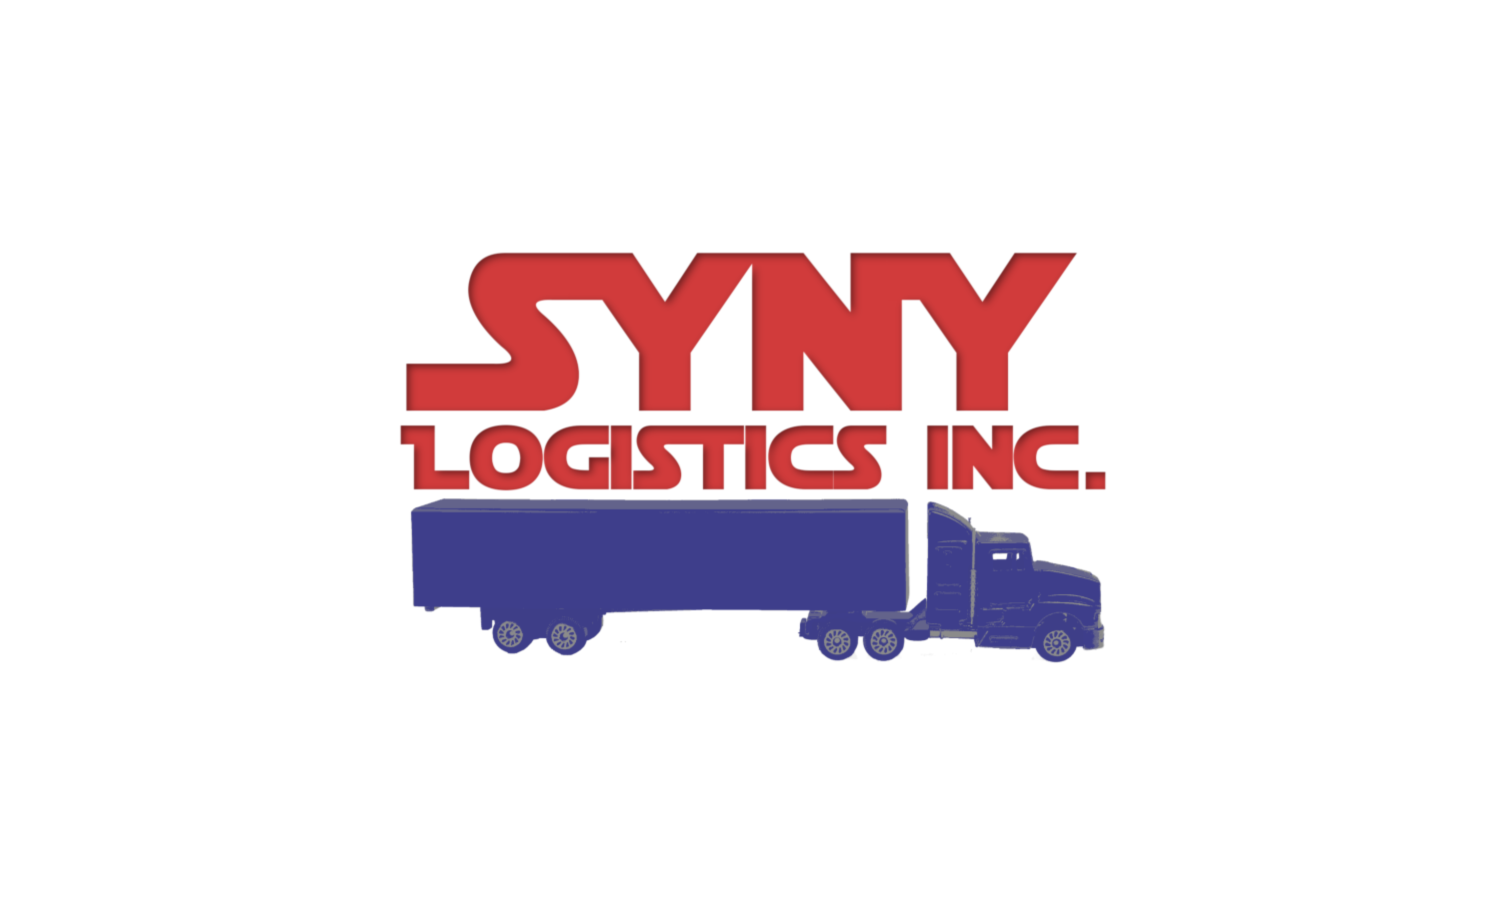 SYNY Logistics Inc.